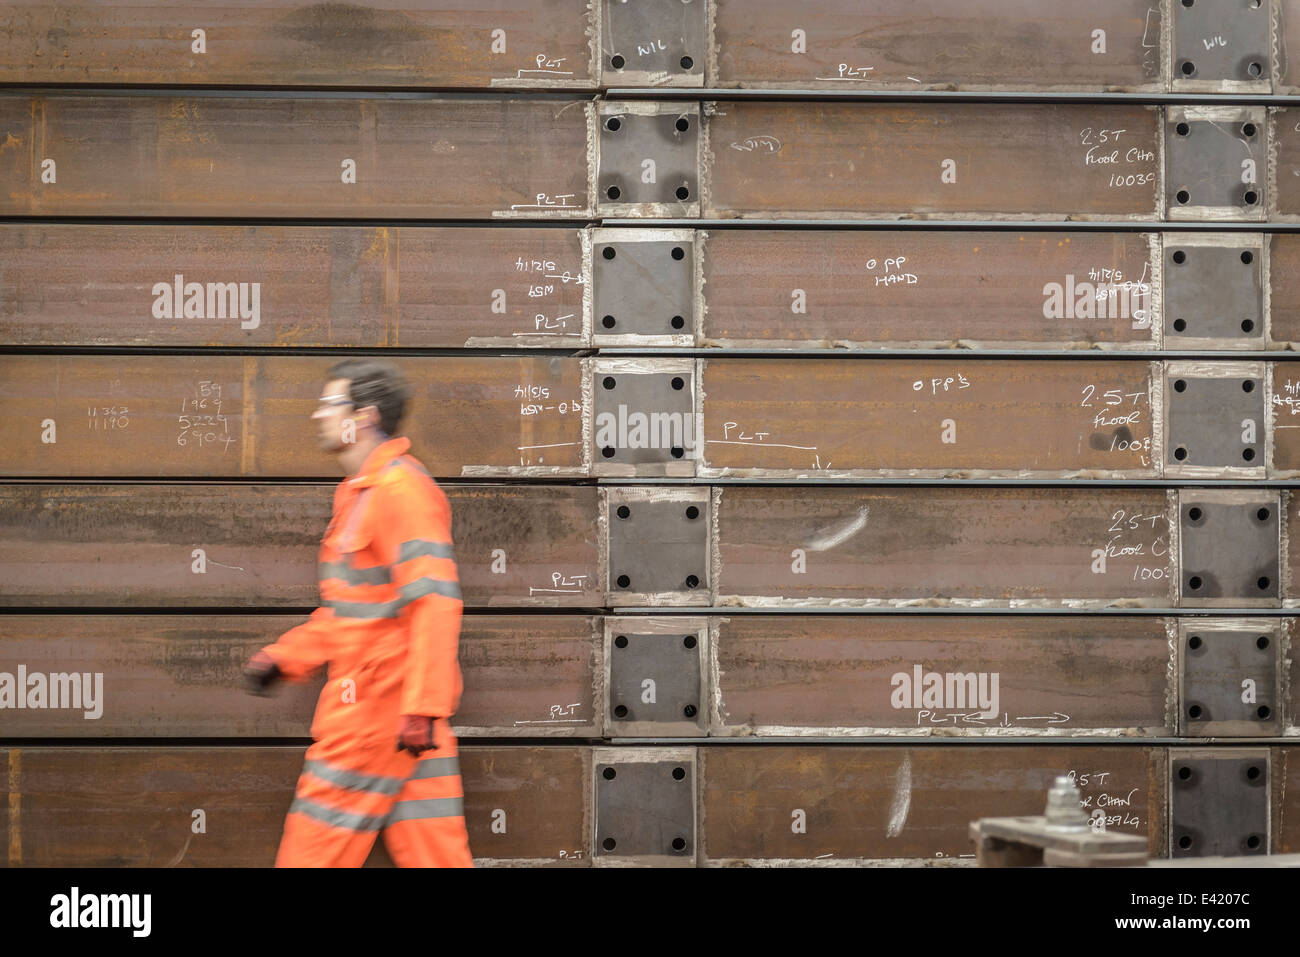 Engineer walking past marine fabrication in factory - Stock Image